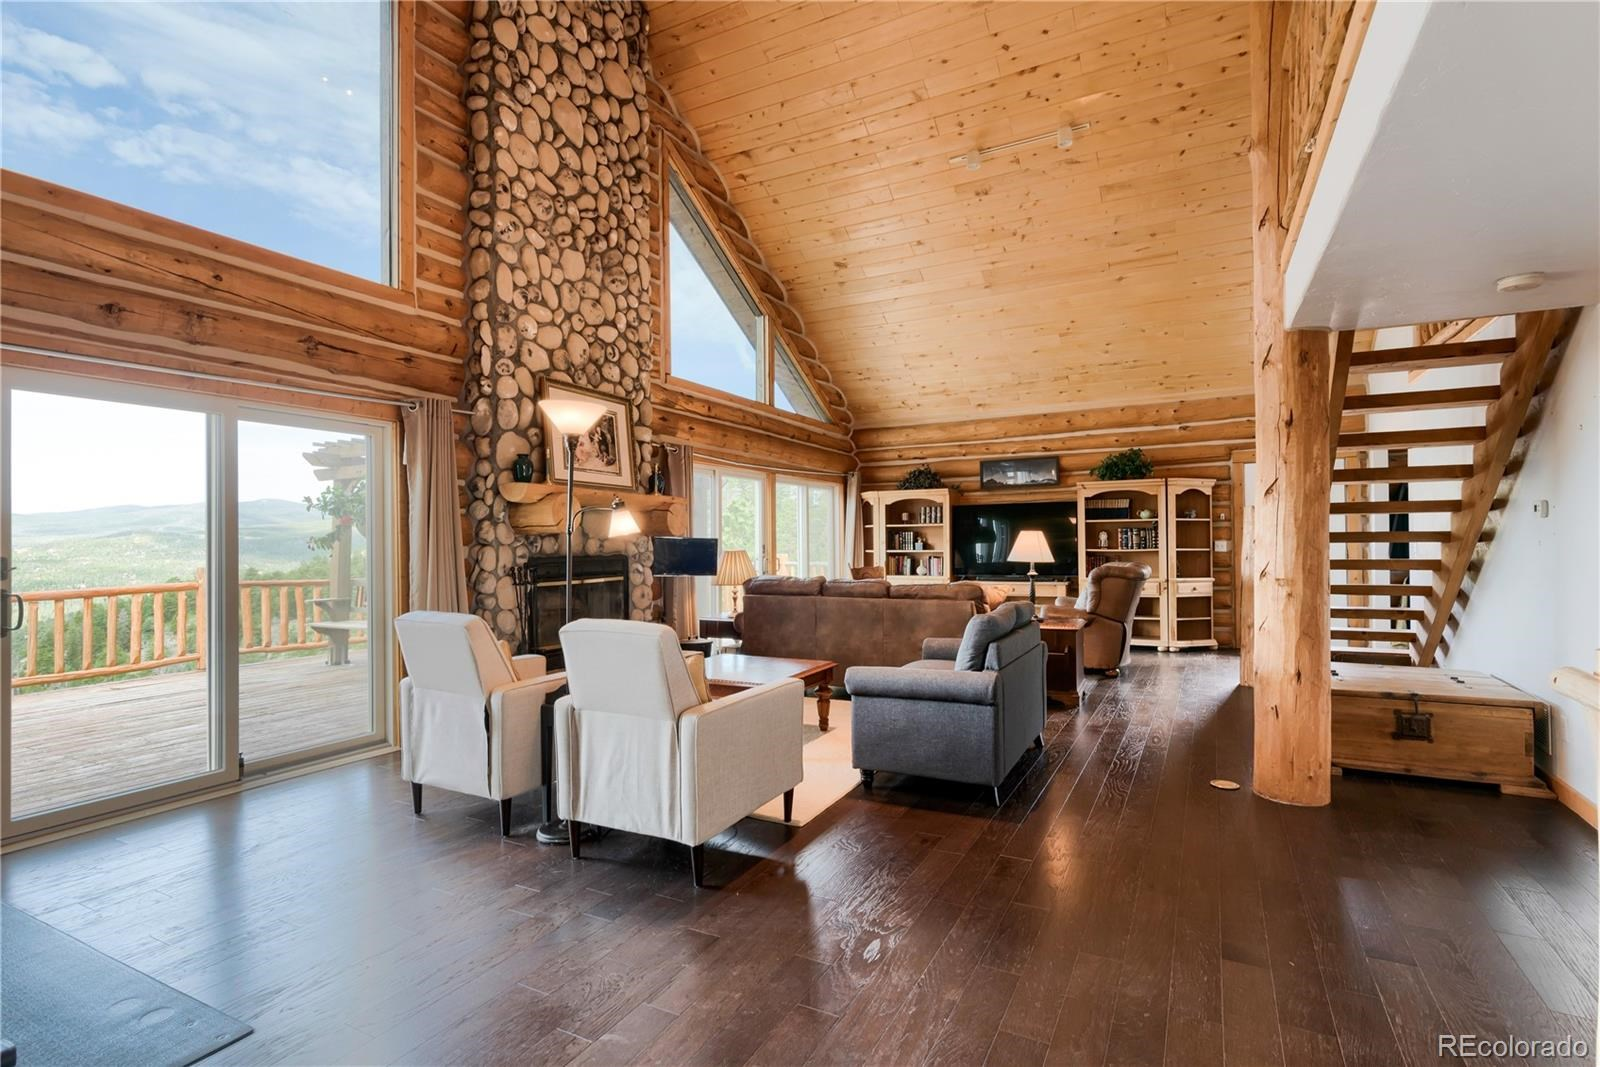 MLS# 3602520 - 14 - 107 Piegan Court, Red Feather Lakes, CO 80545